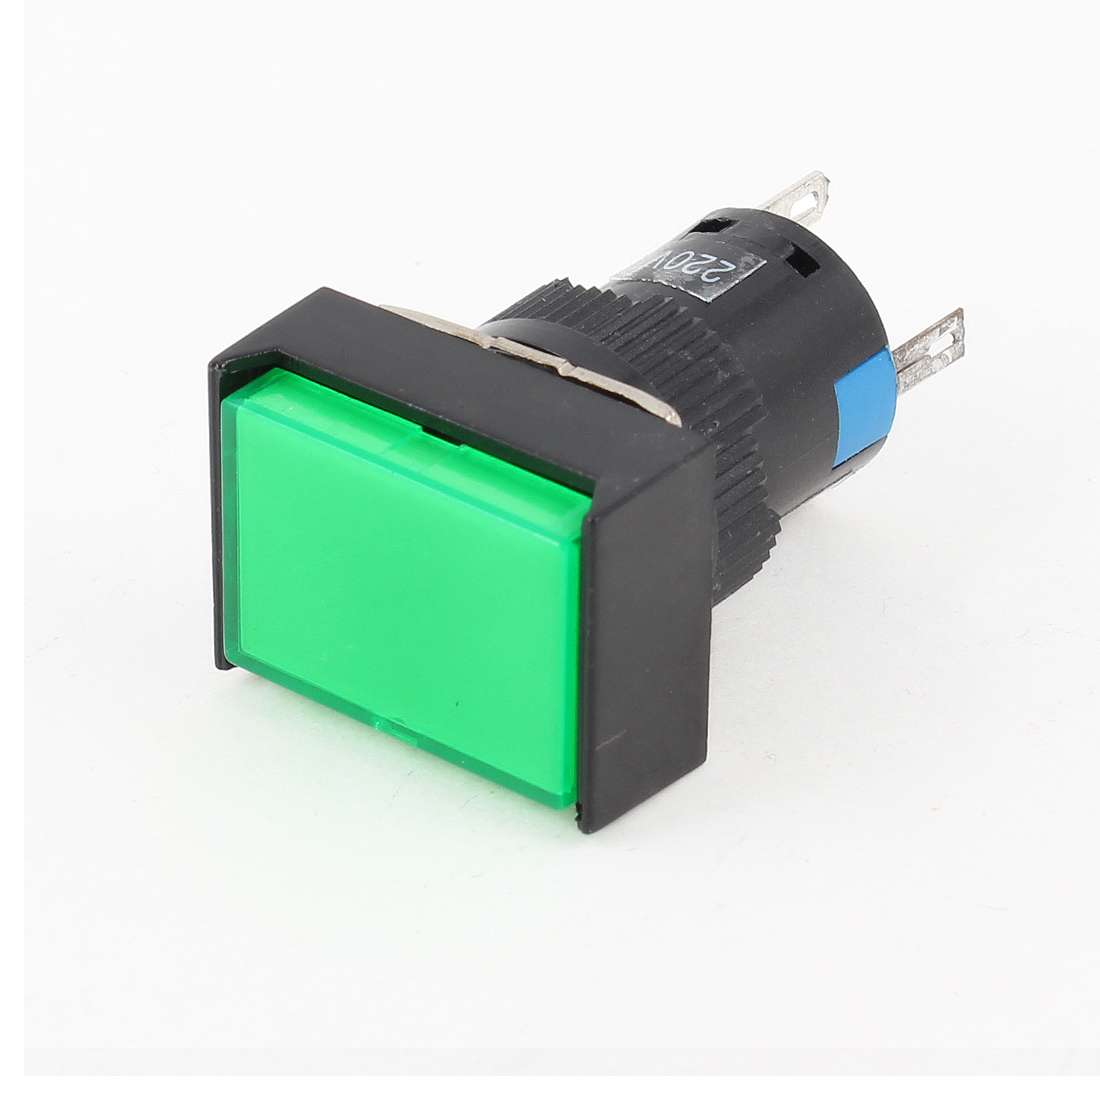 Green Rectangle DC 24V Neon Light Momentary Pushbutton Switch DC 30V 5A